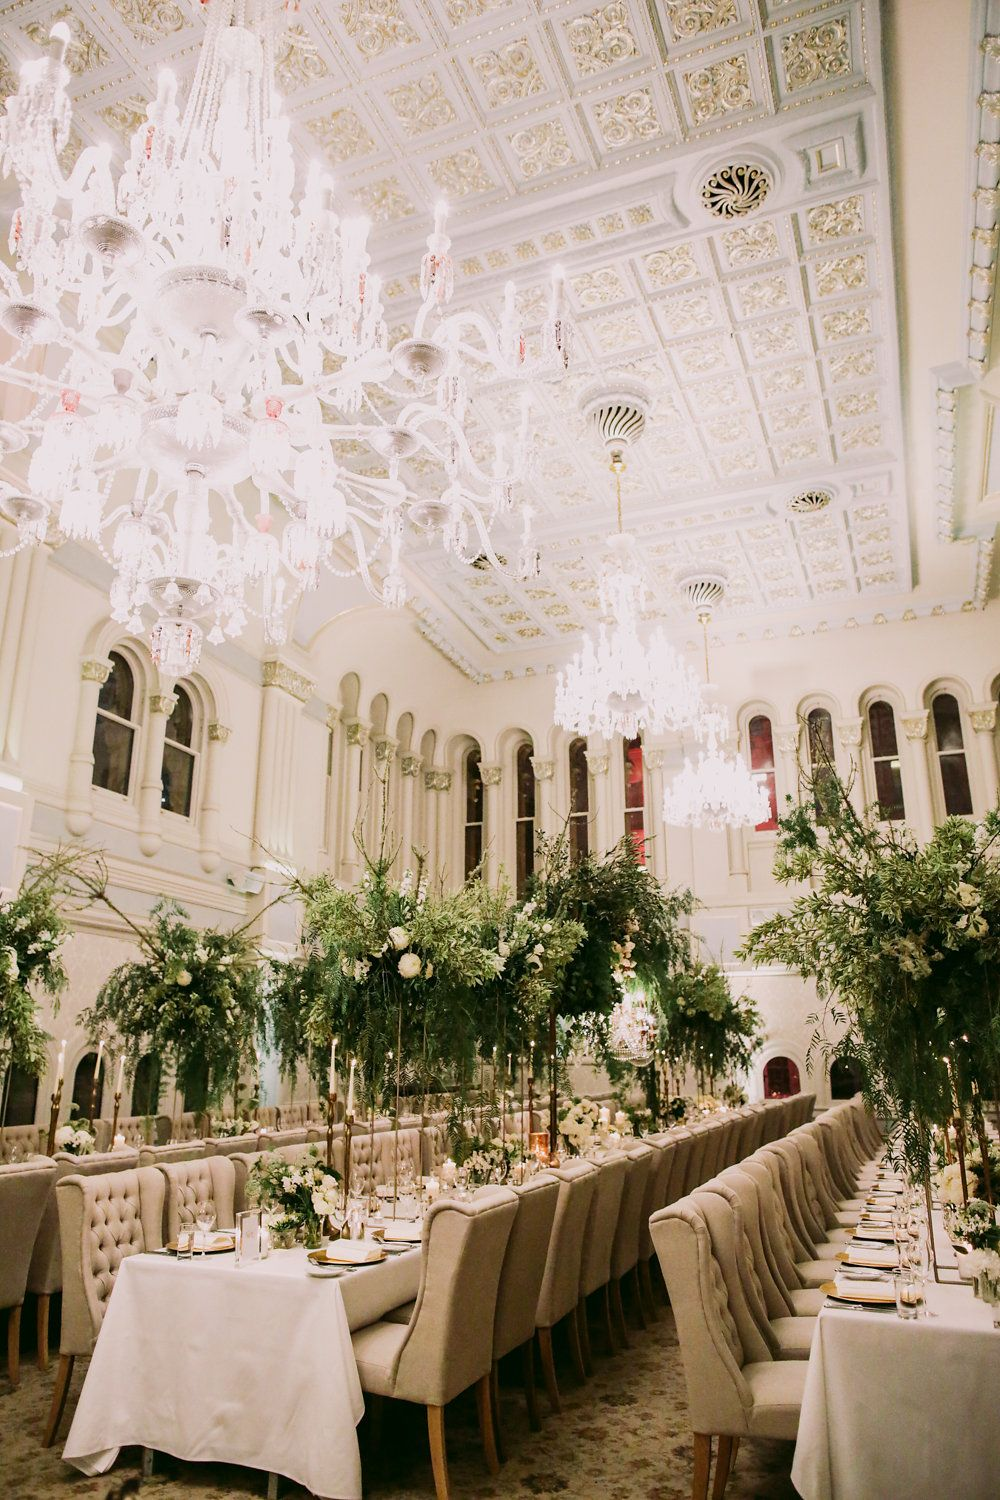 Chic australian wedding with greenery and gold photo by lara hotz chic australian wedding with greenery and gold photo by lara hotz http junglespirit Choice Image